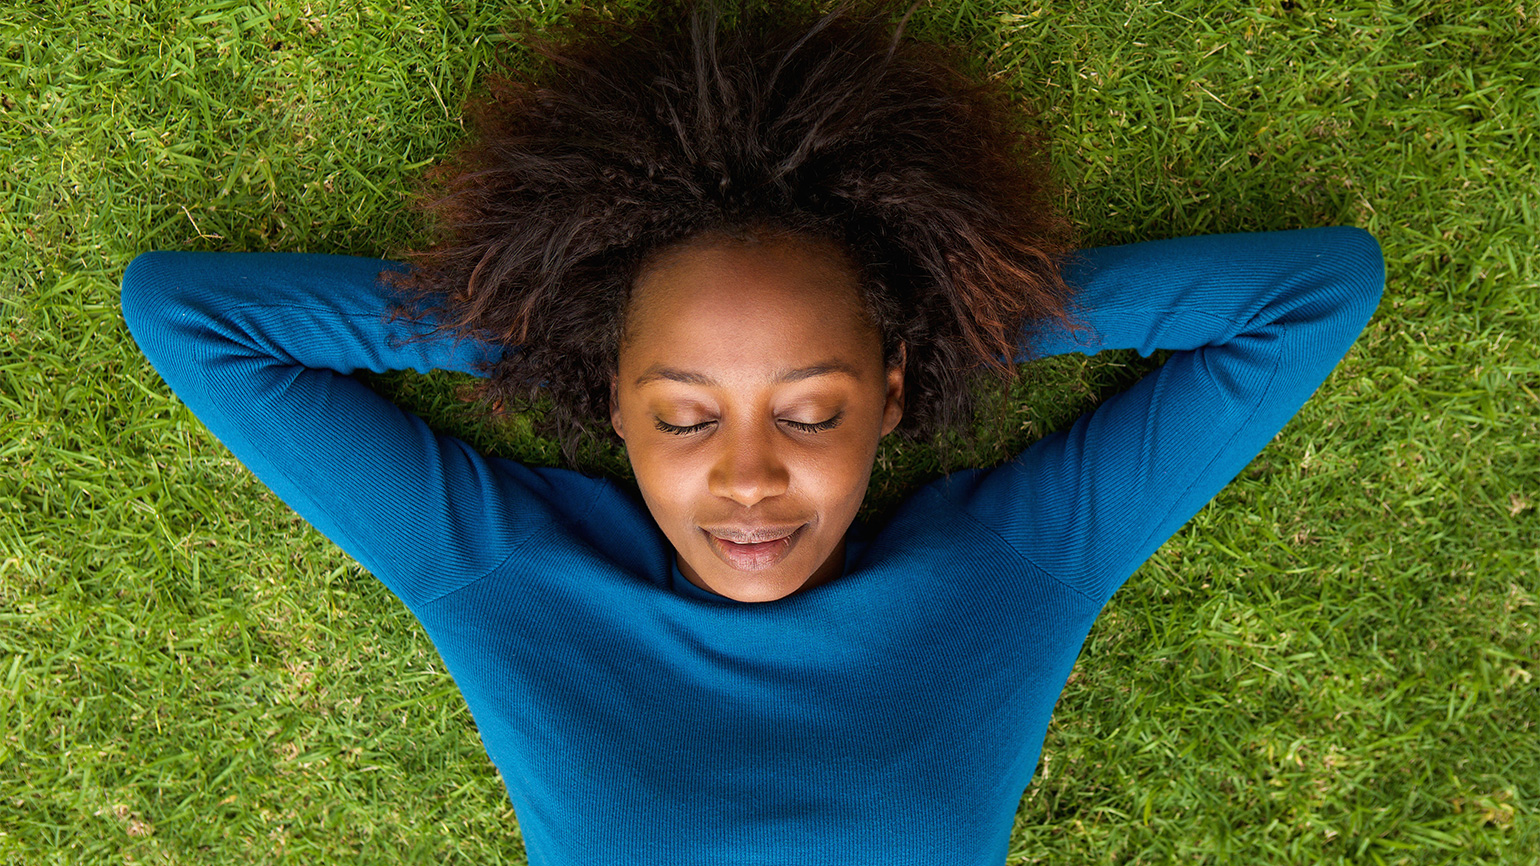 A woman rests on the green grass